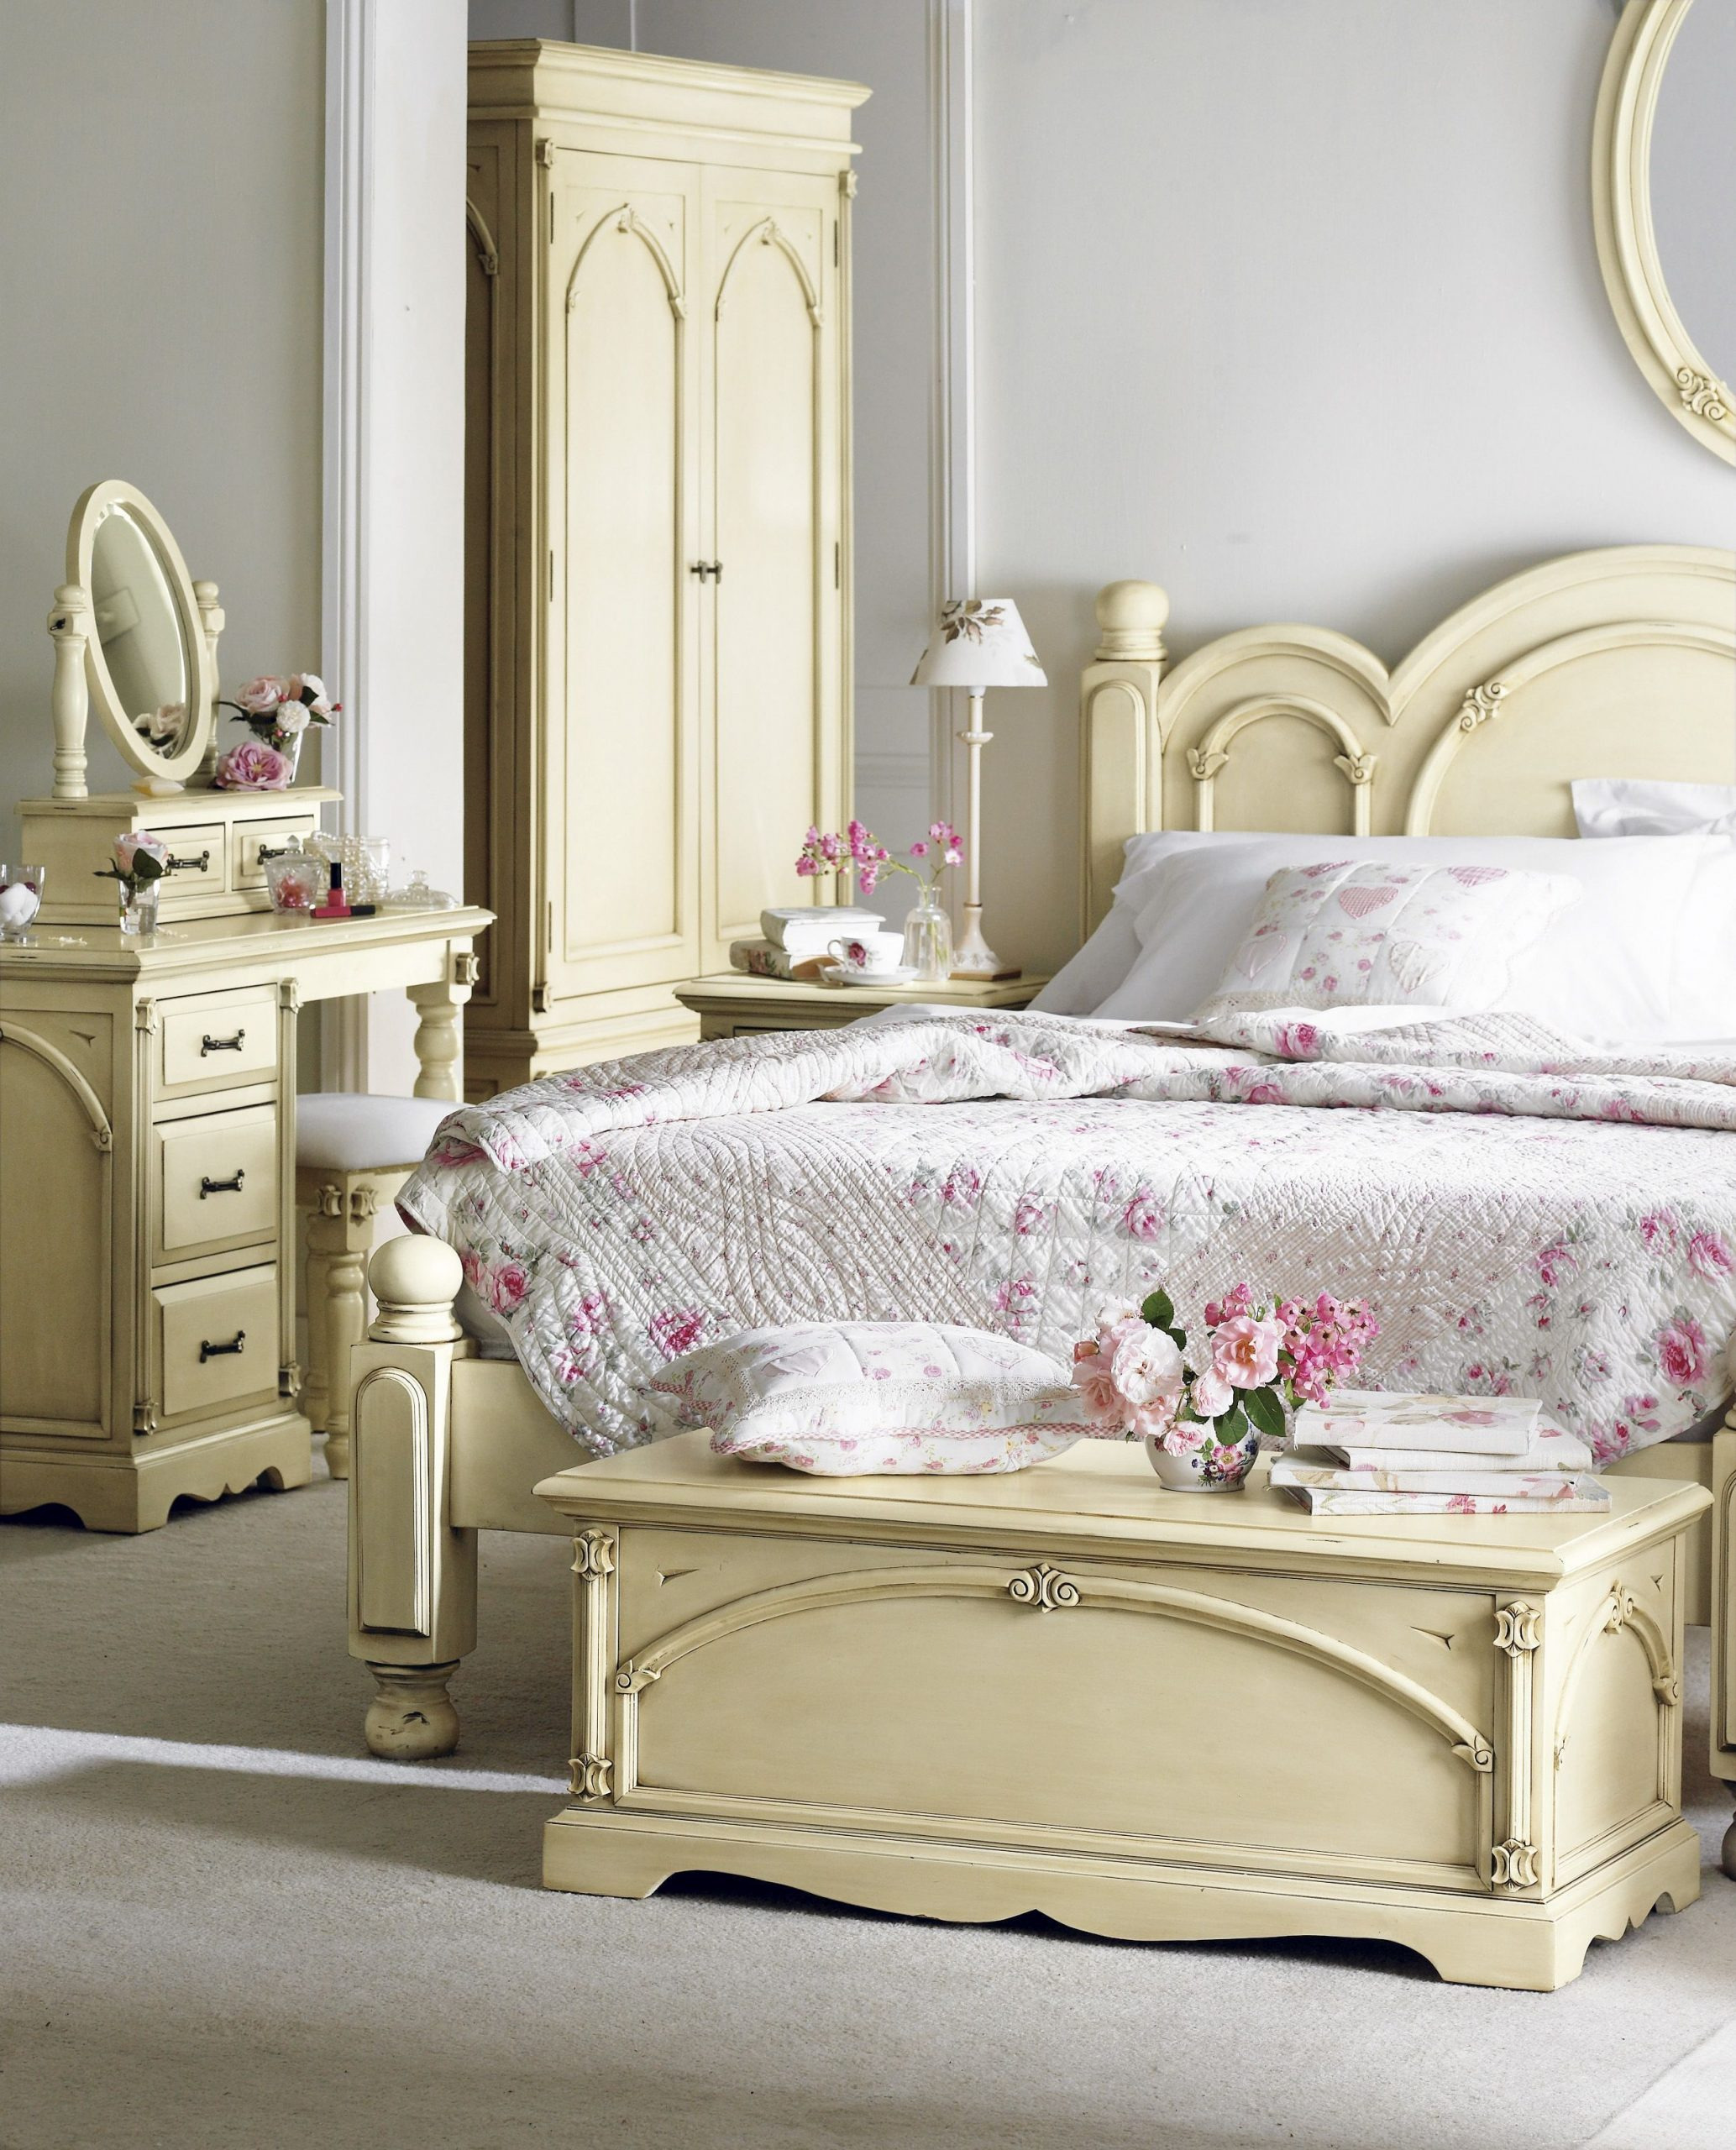 shabby chic bedroom furniture white ebay second hand french australia ideas for awesome vintage scaled